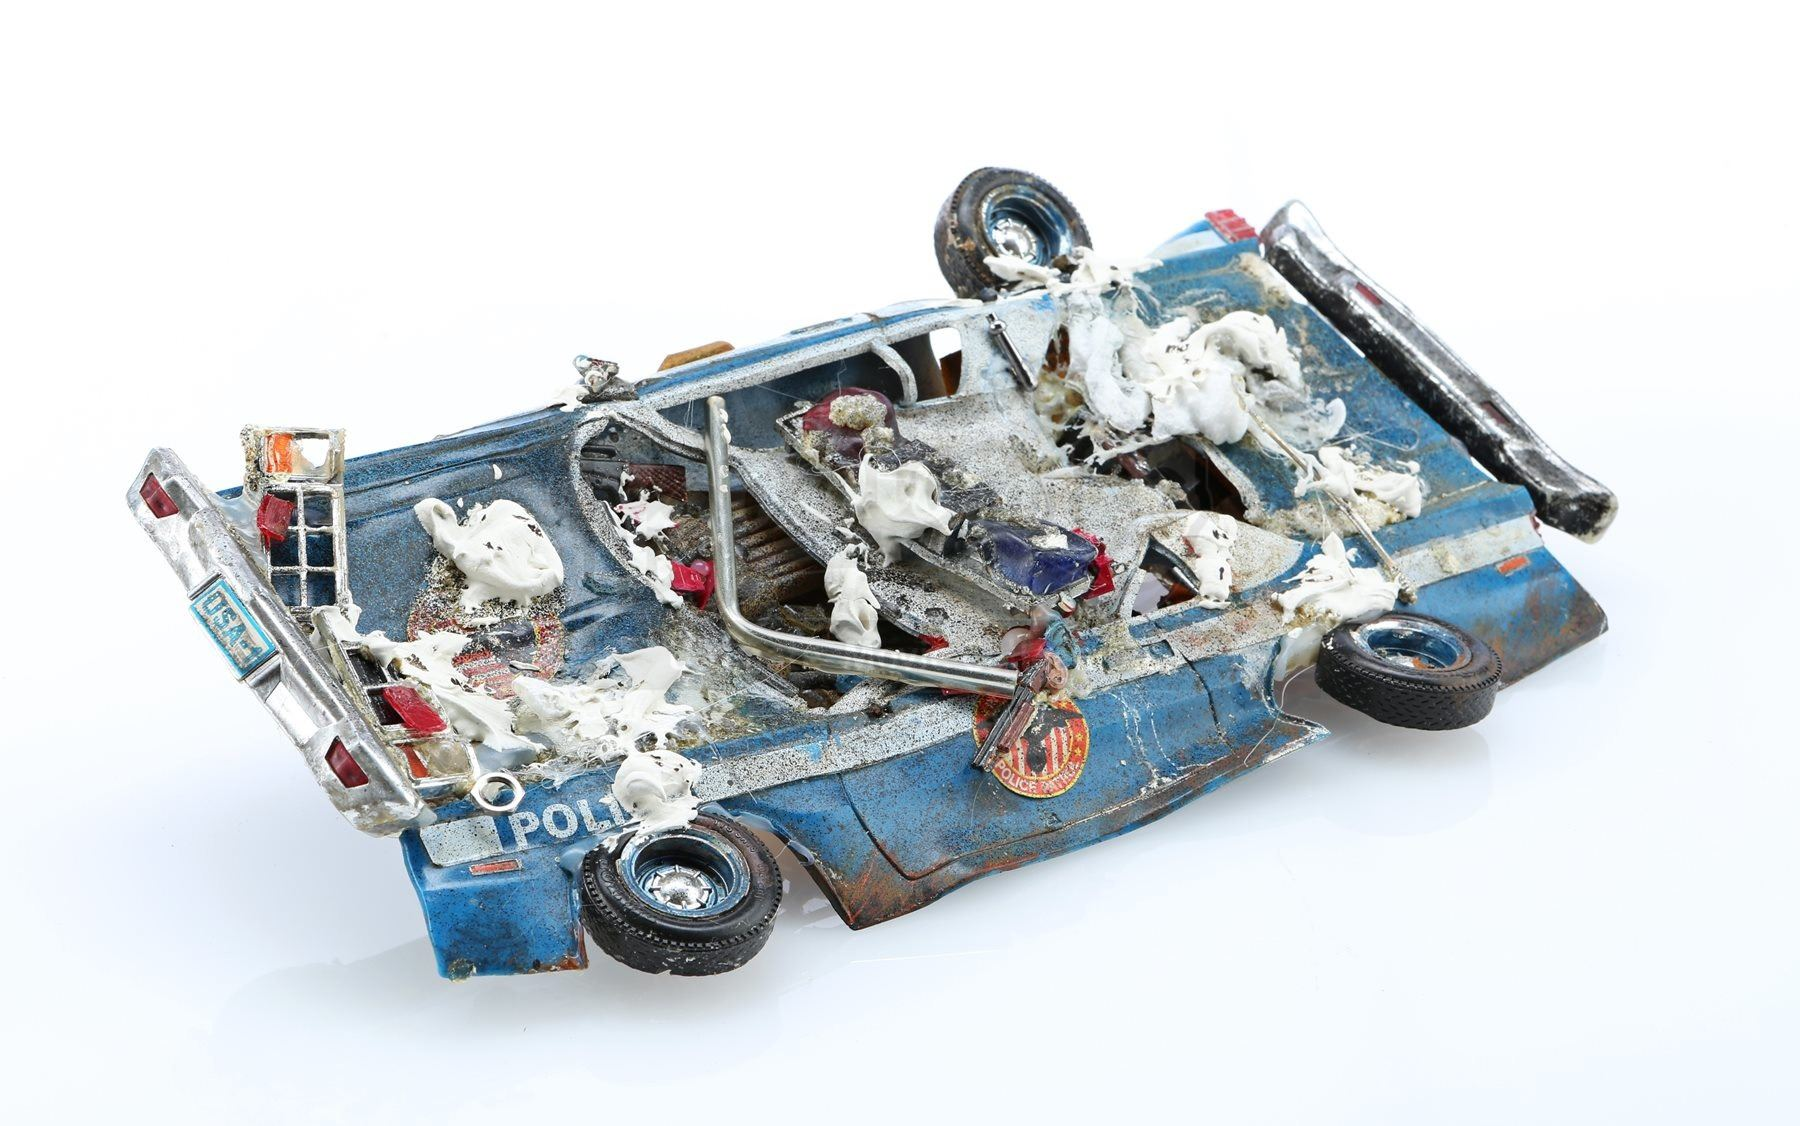 GHOSTBUSTERS (1984) - Marshmellow-Covered Crushed Police Car Model Miniature